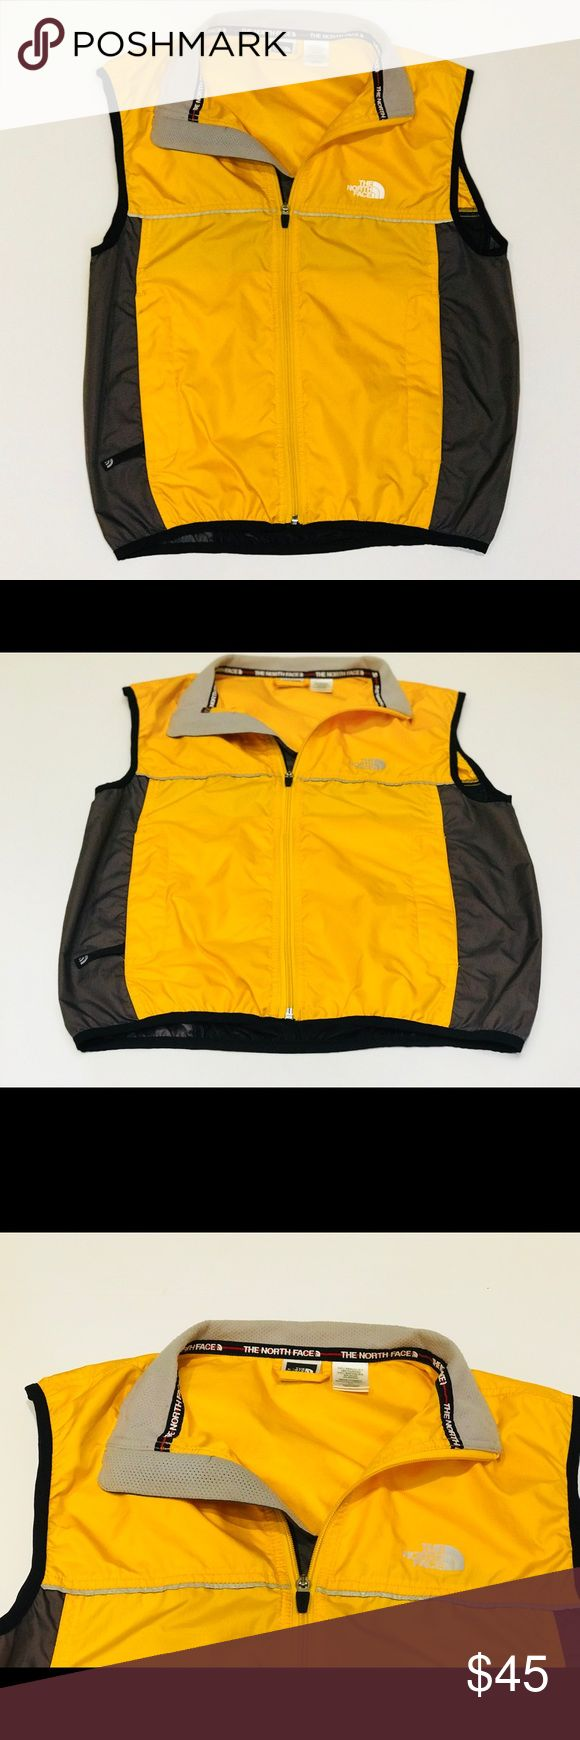 BRAND NEW! YELLOW NORTH FACE VEST BRAND NEW NEVER WORN LIGHT WEIGHT, MESH BACK EASY TO BREATHE MATERIAL North Face Jackets & Coats Vests